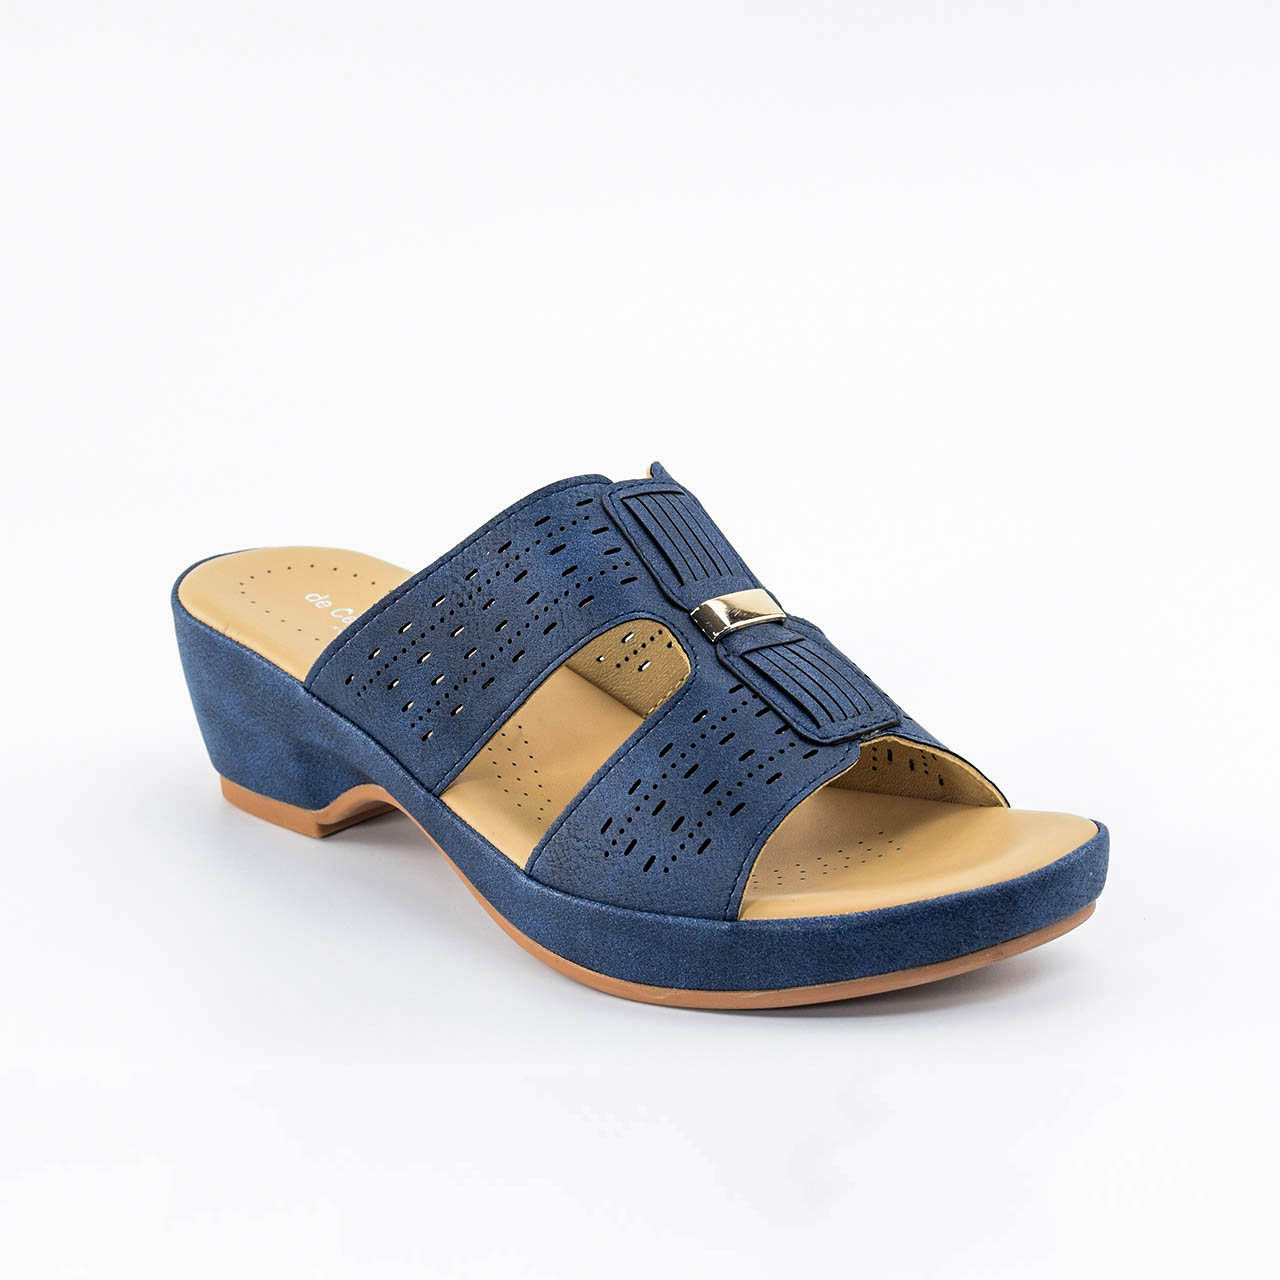 Aubrey Wedges in Navy